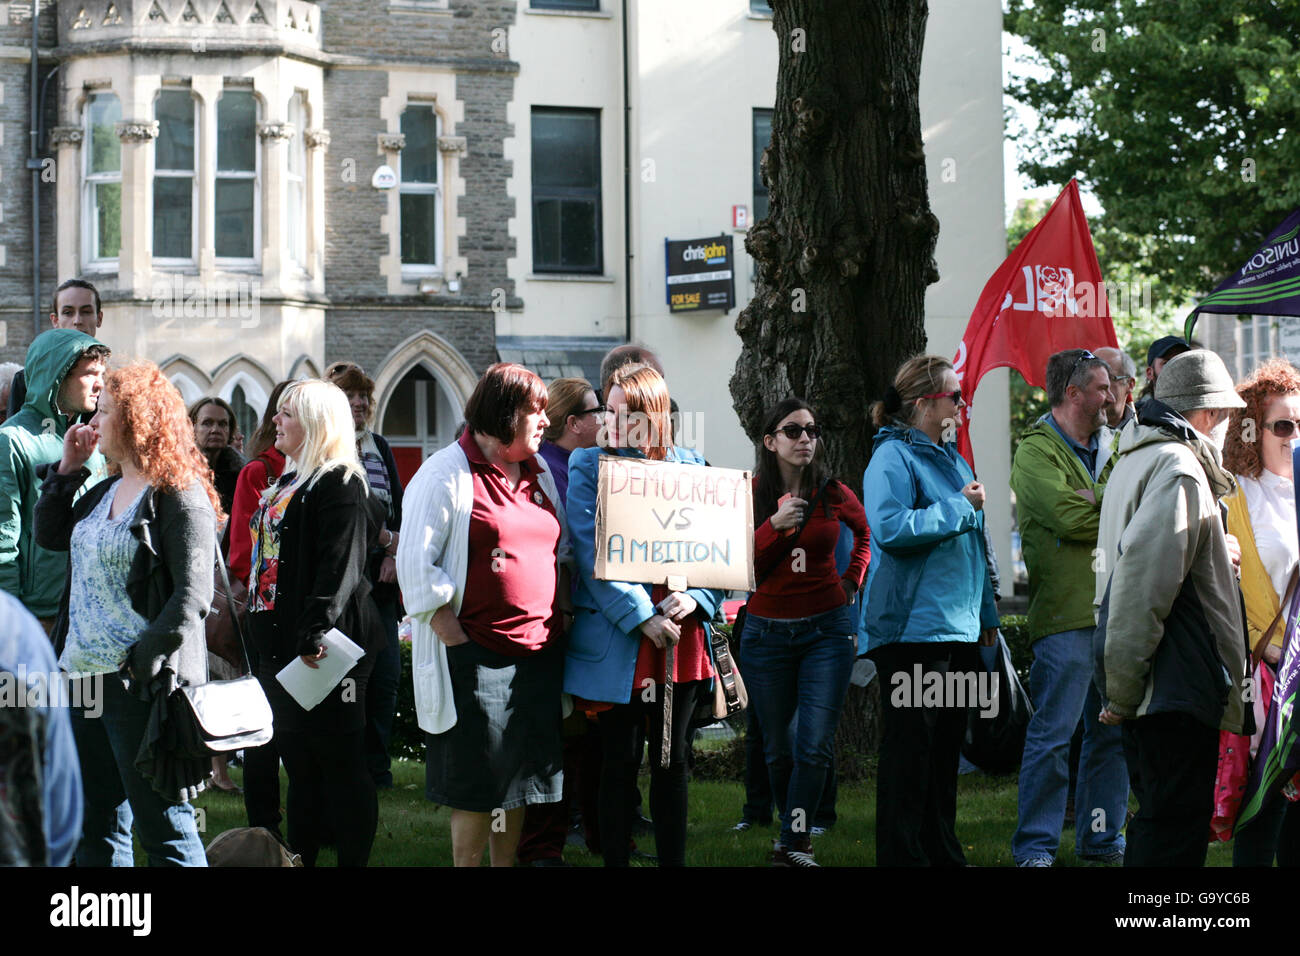 Cardiff, UK. 1st July, 2016. Cardiff rally defending the Labour Leader Jeremy Corbyn outside of the Unite union - Stock Image